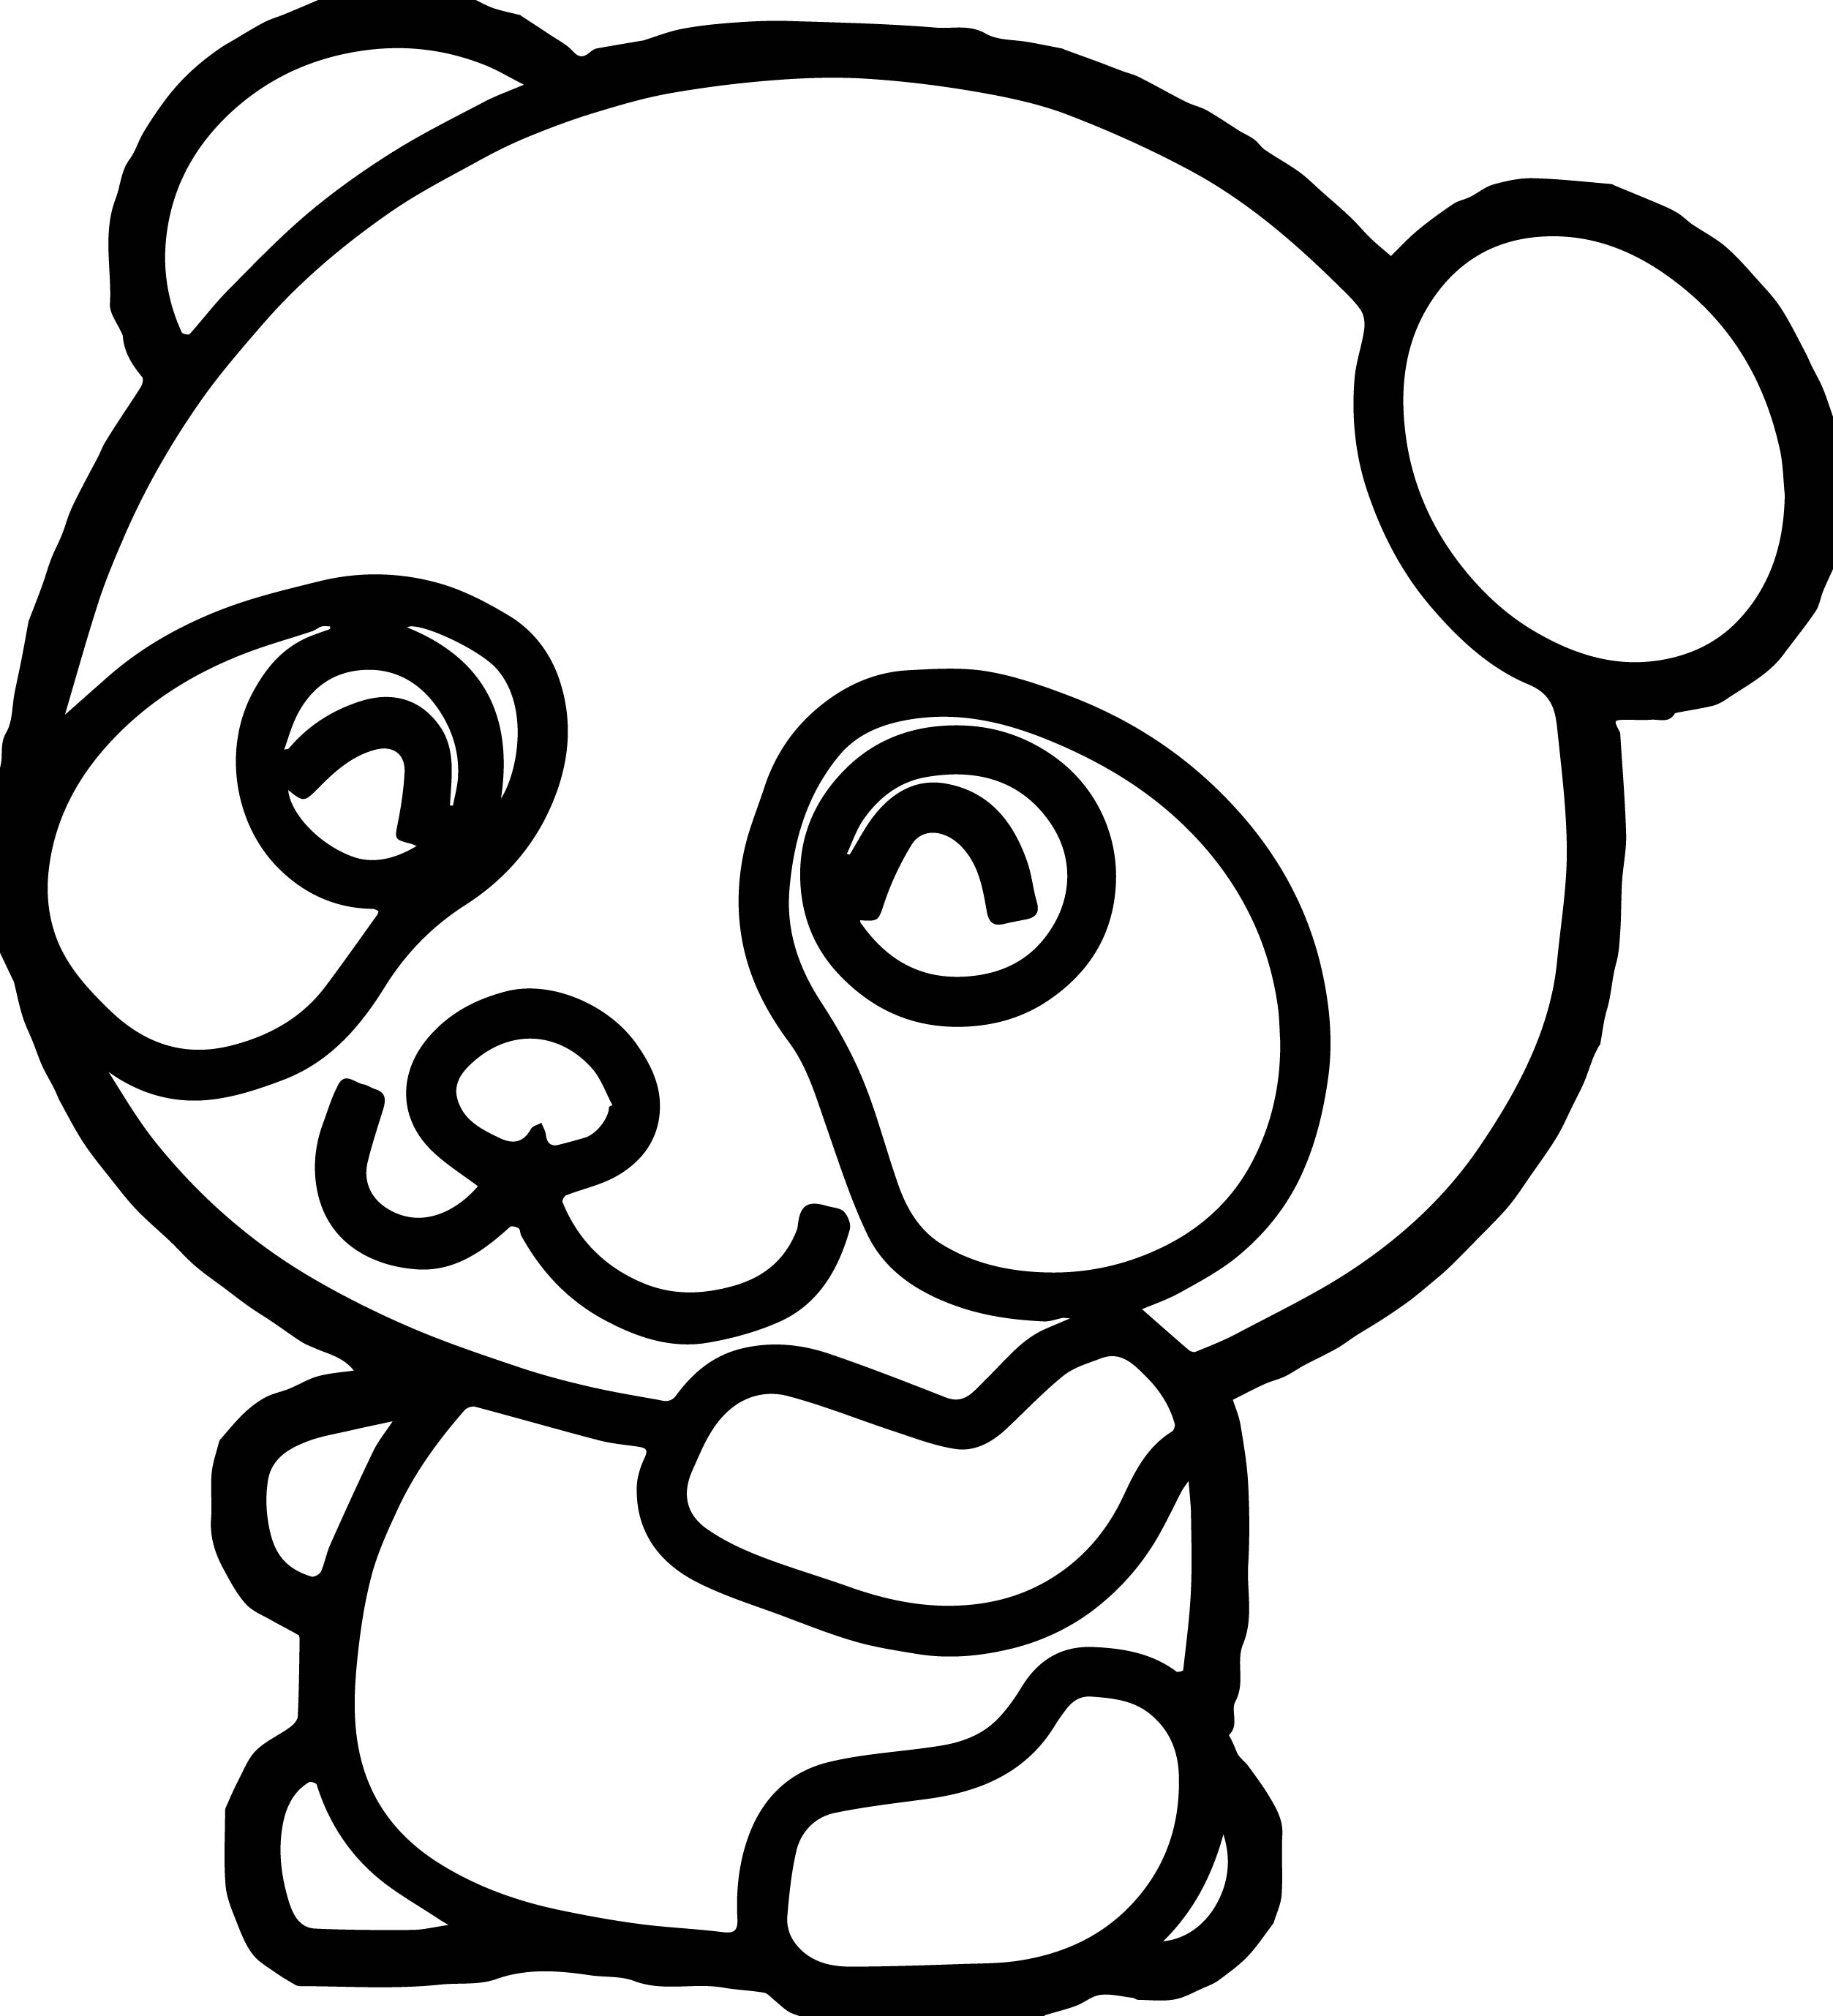 2506x2756 The Kids Heart Eye Emojis Coloring Page